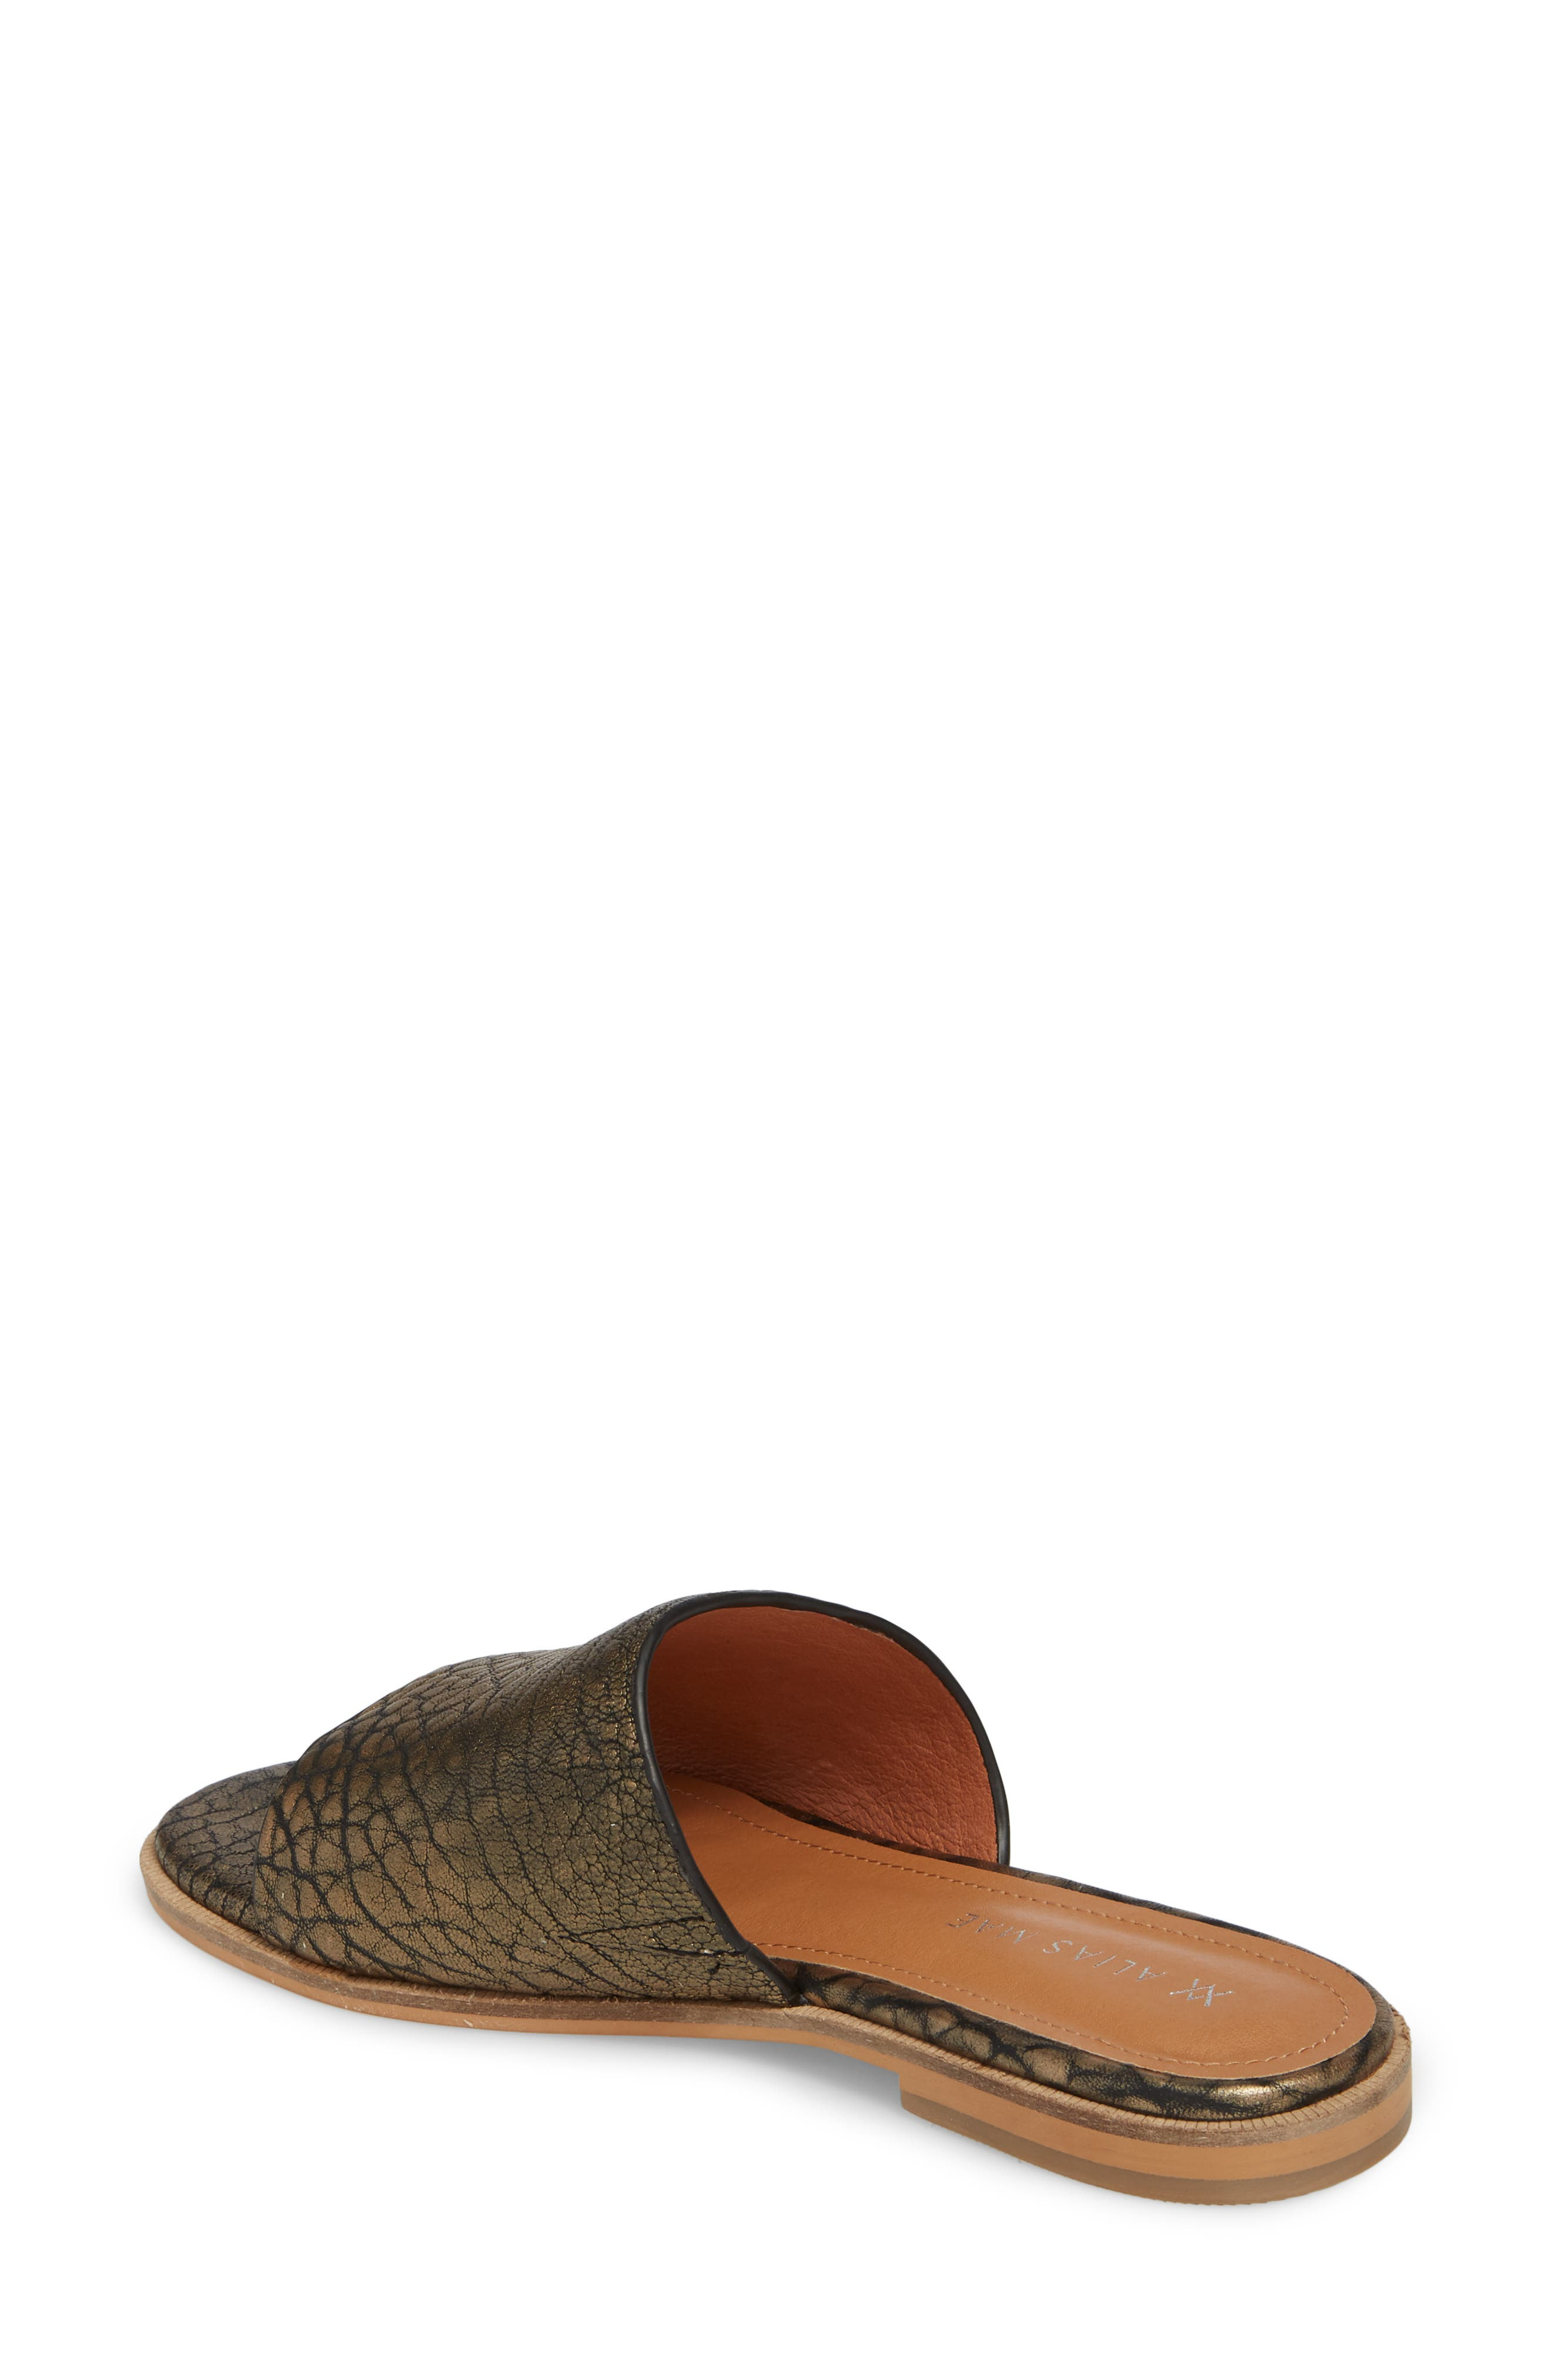 Therapy Slide Sandal,                             Alternate thumbnail 2, color,                             Gold Leather